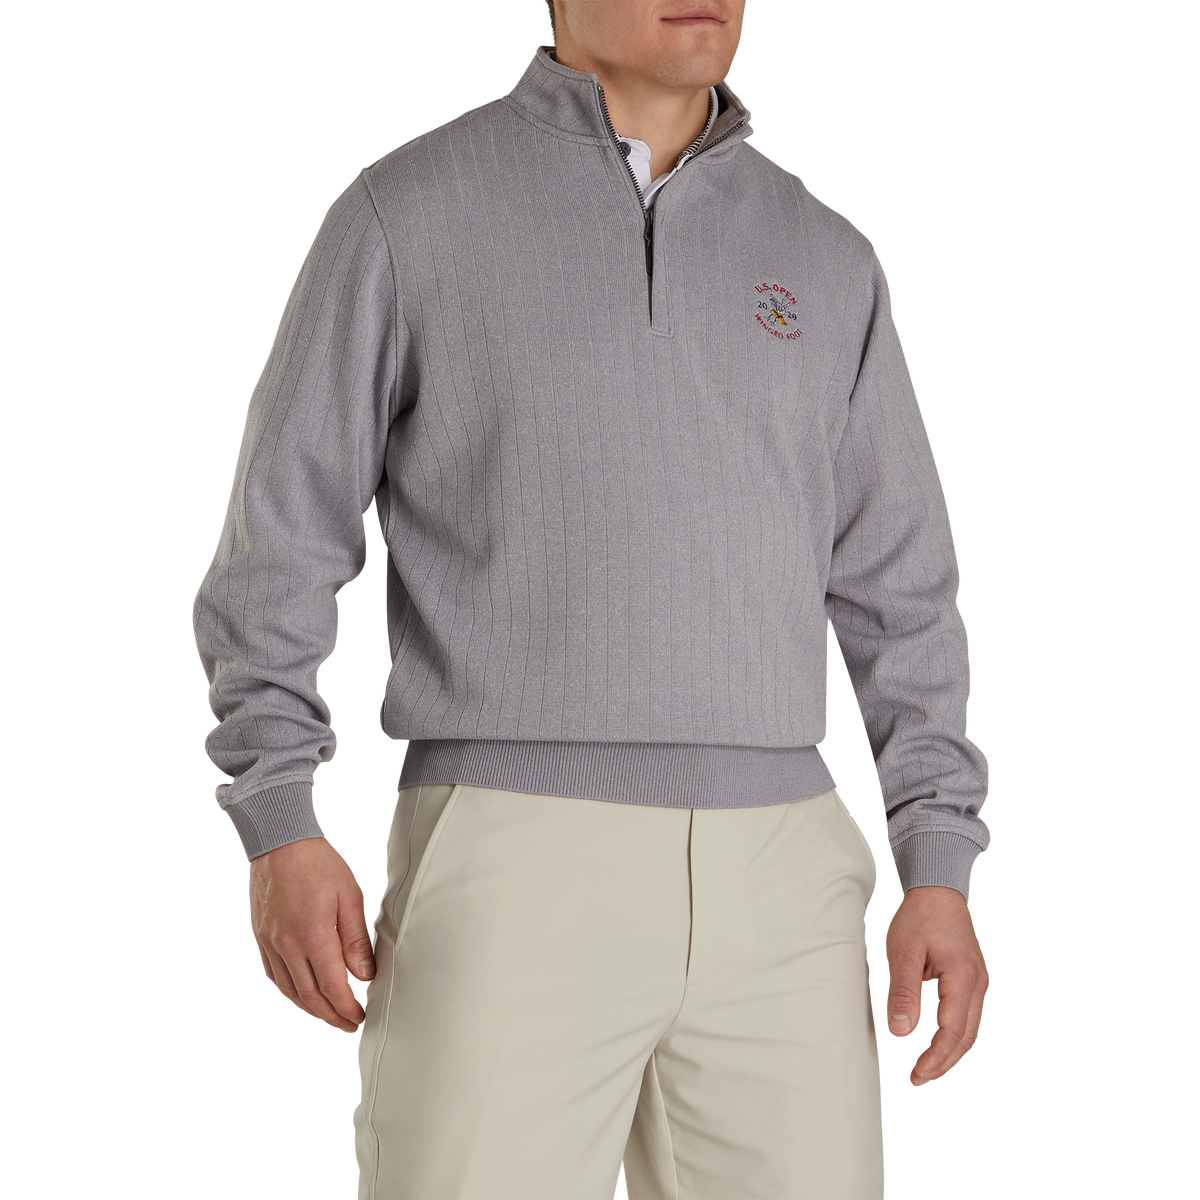 2020 U.S. Open Drop Needle Half-Zip Gathered Waist